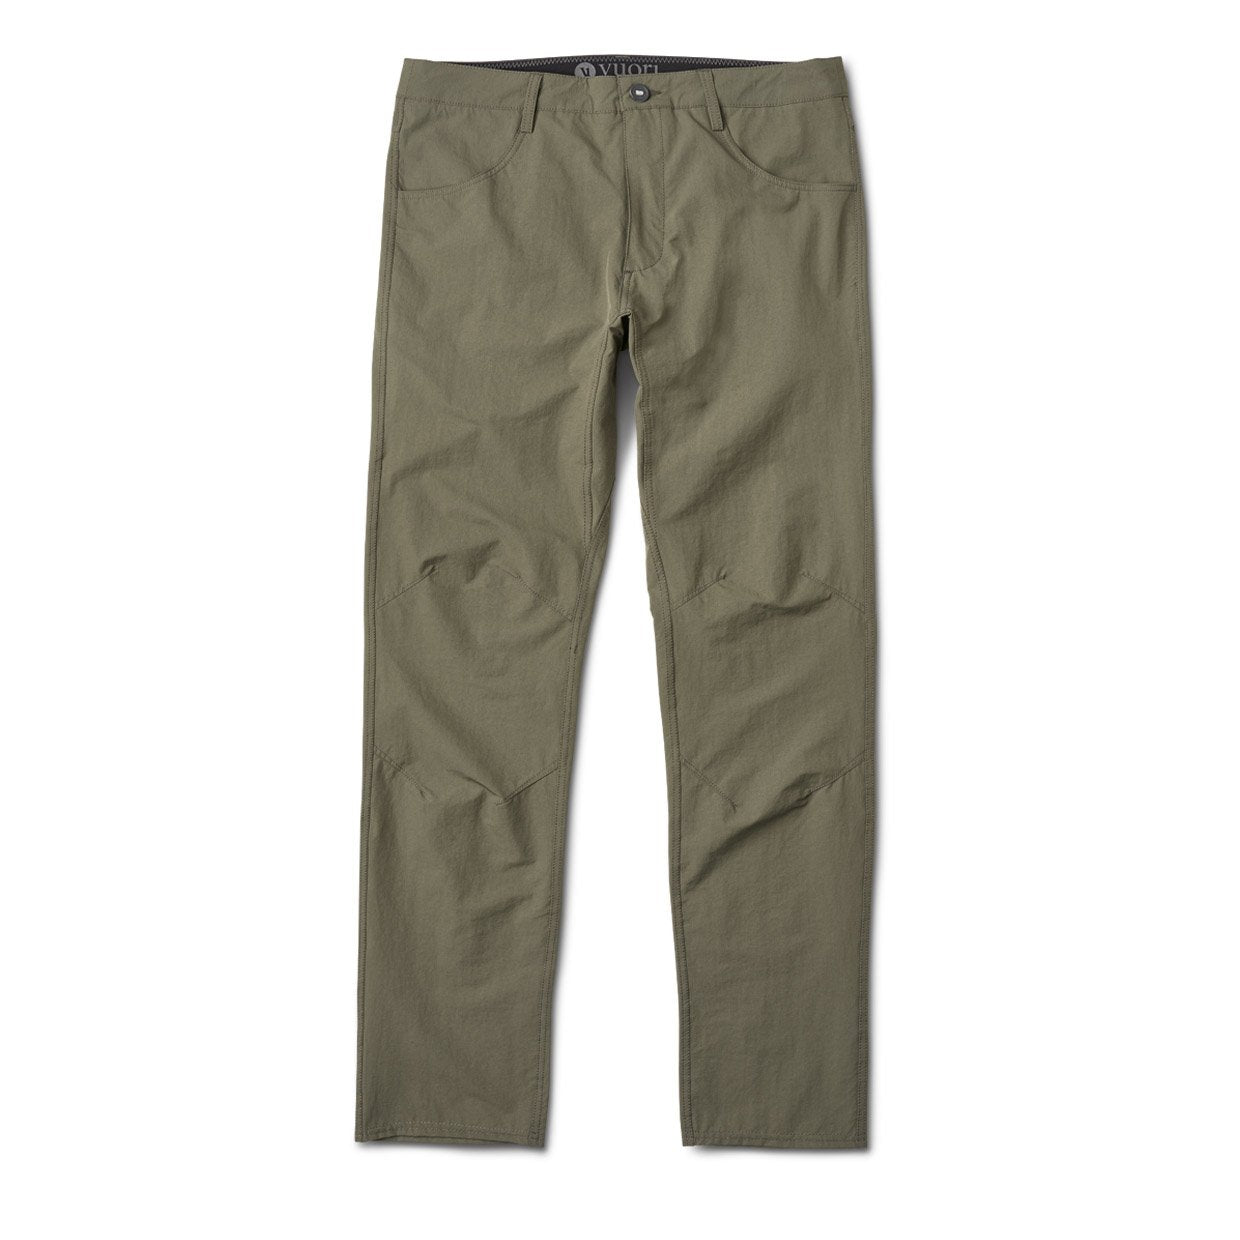 Abrasion-Less Pant - Army - Army 1